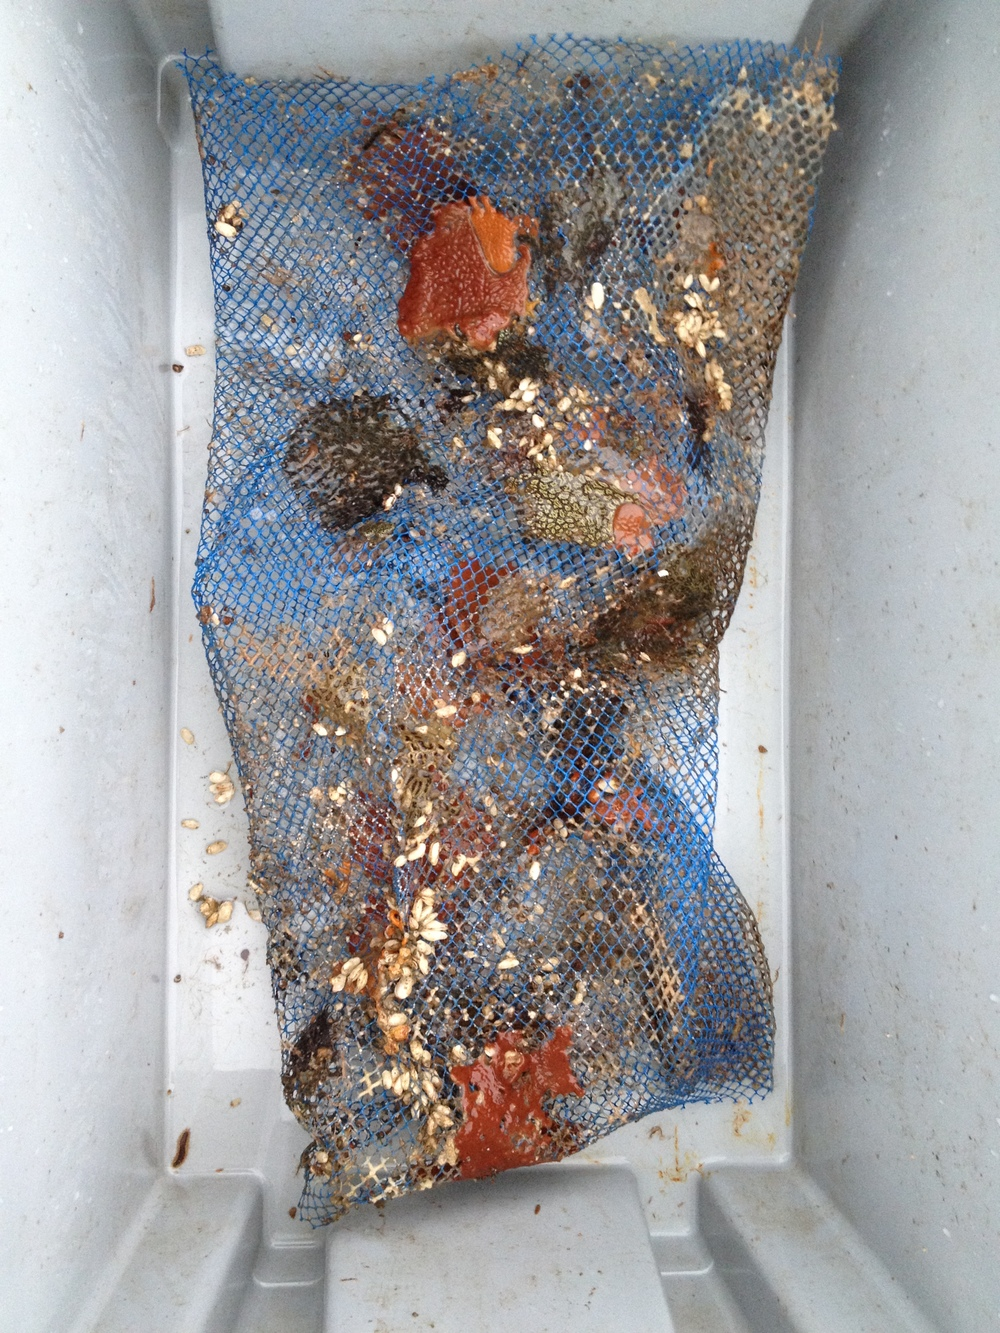 An invasive form of encrusting tunicate forms orange and black mats on the mesh. The little white shapes are clams!